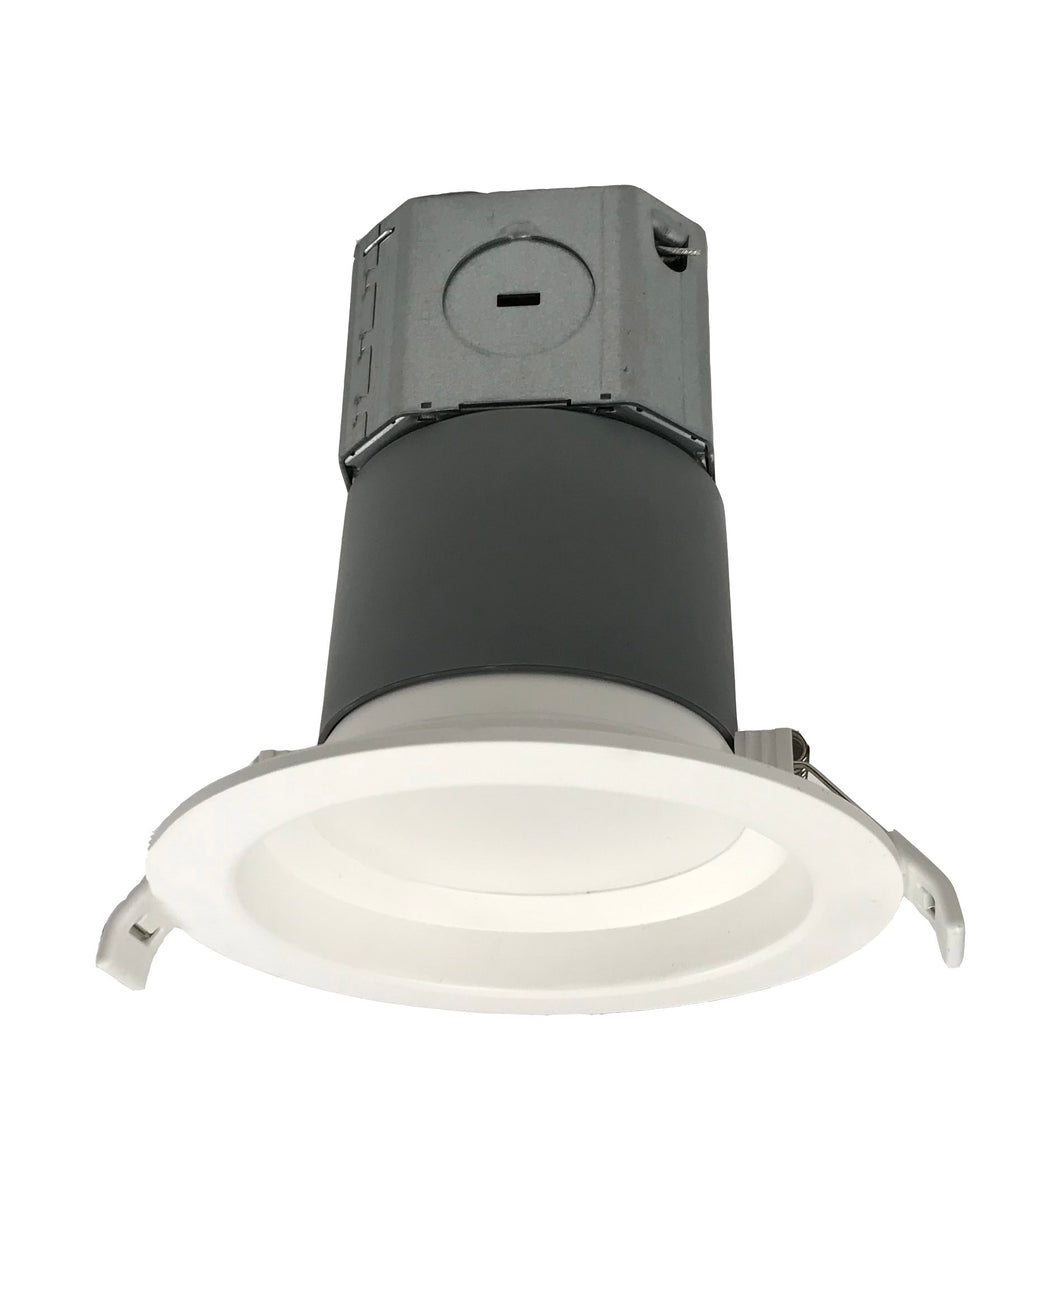 4 inch Recessed LED Baffle - New Construction | Your LED Light Source